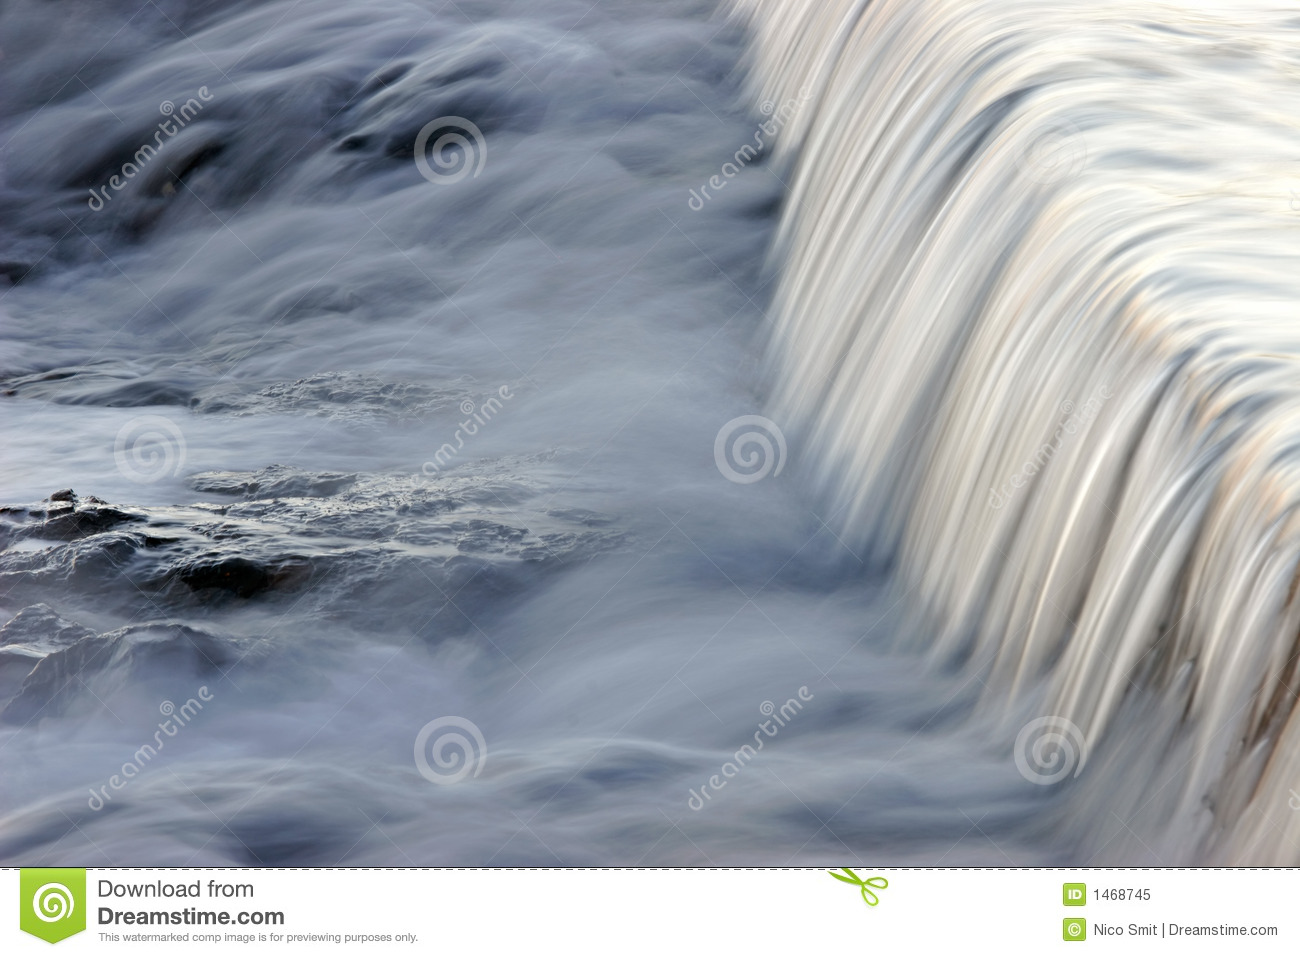 Flowing water taken with a slow shutter speed on a rocky beach.: dreamstime.com/royalty-free-stock-photo-flowing-water-image1468745